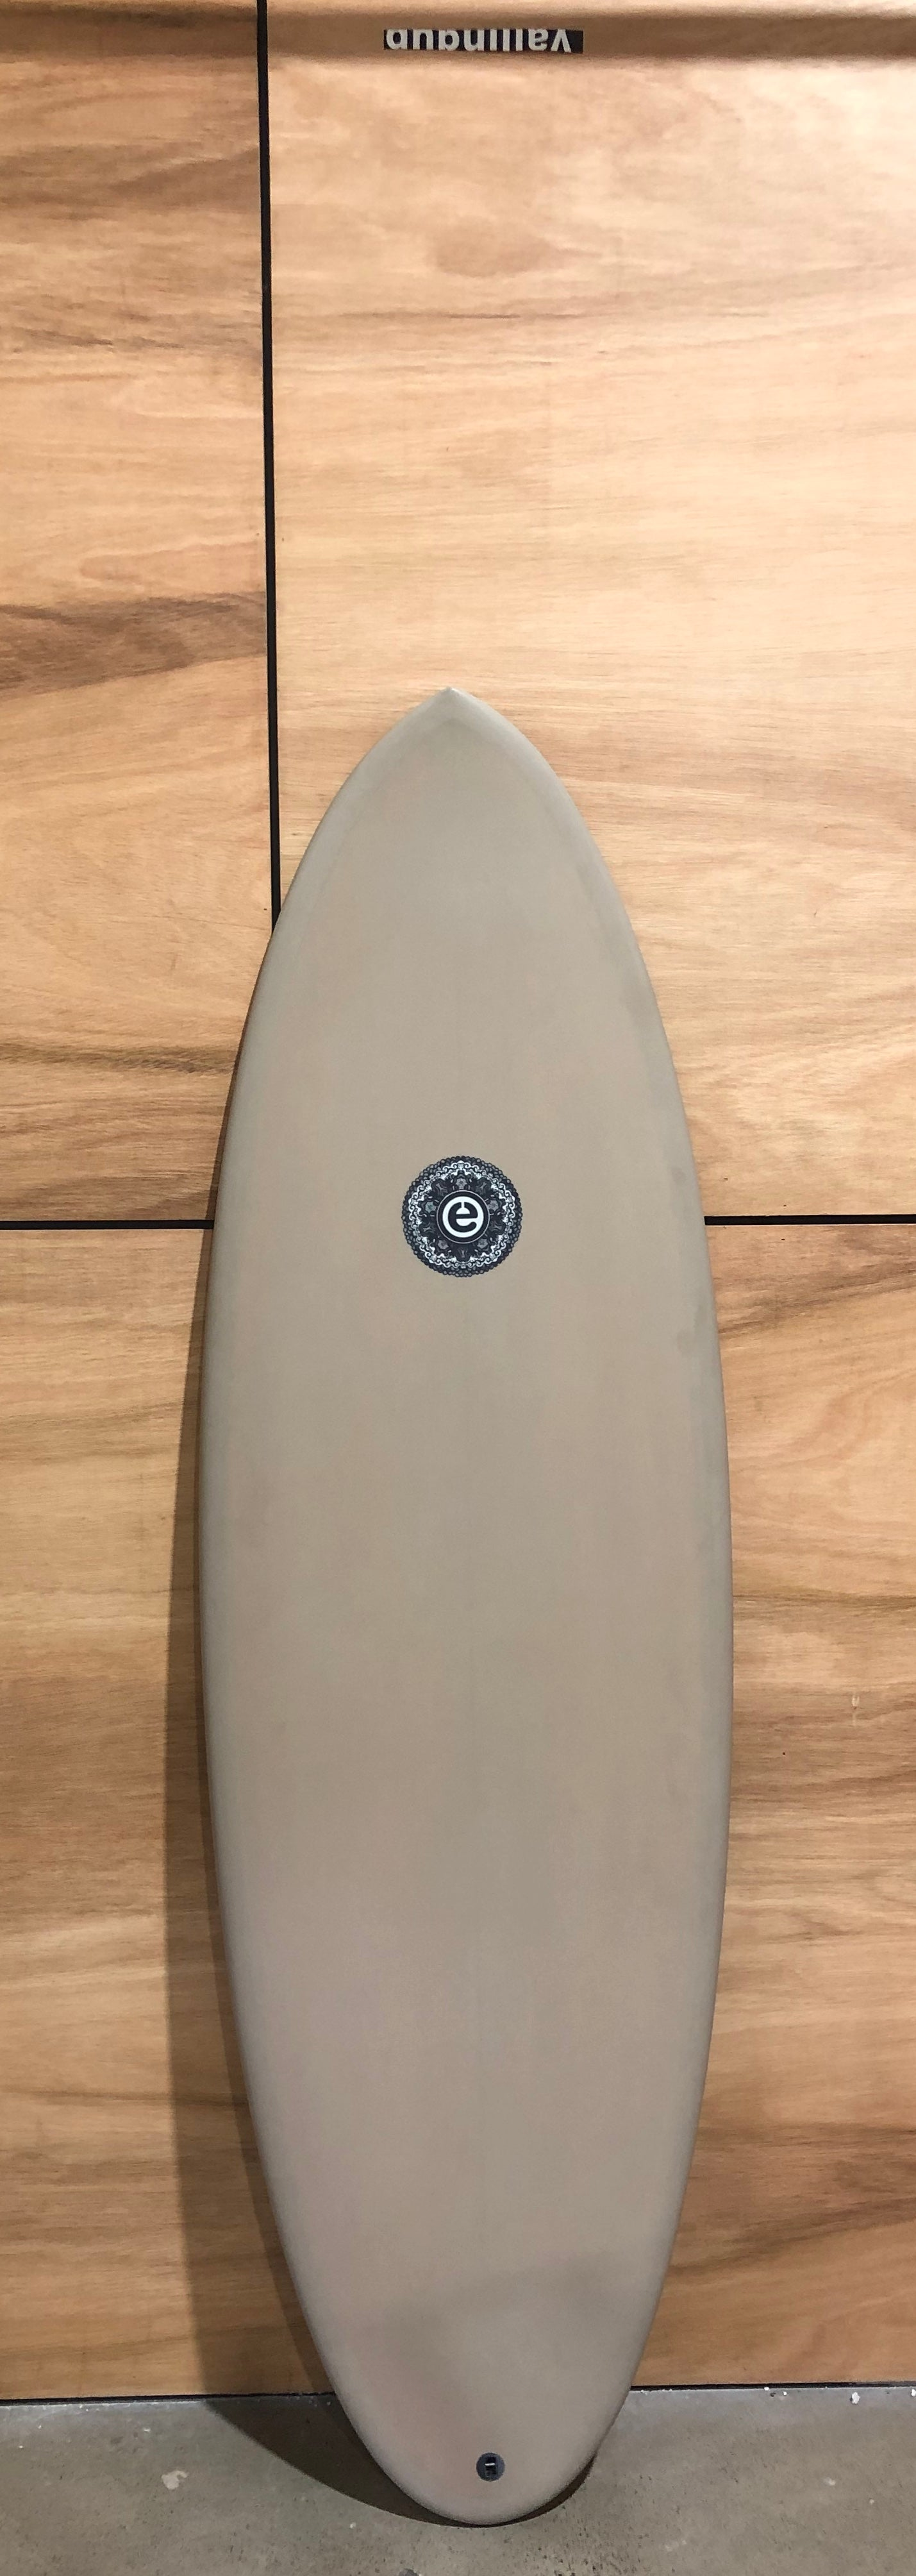 Element - SCRAMBLED EGG CAMEL BROWN - Board Store ElementSurfboard